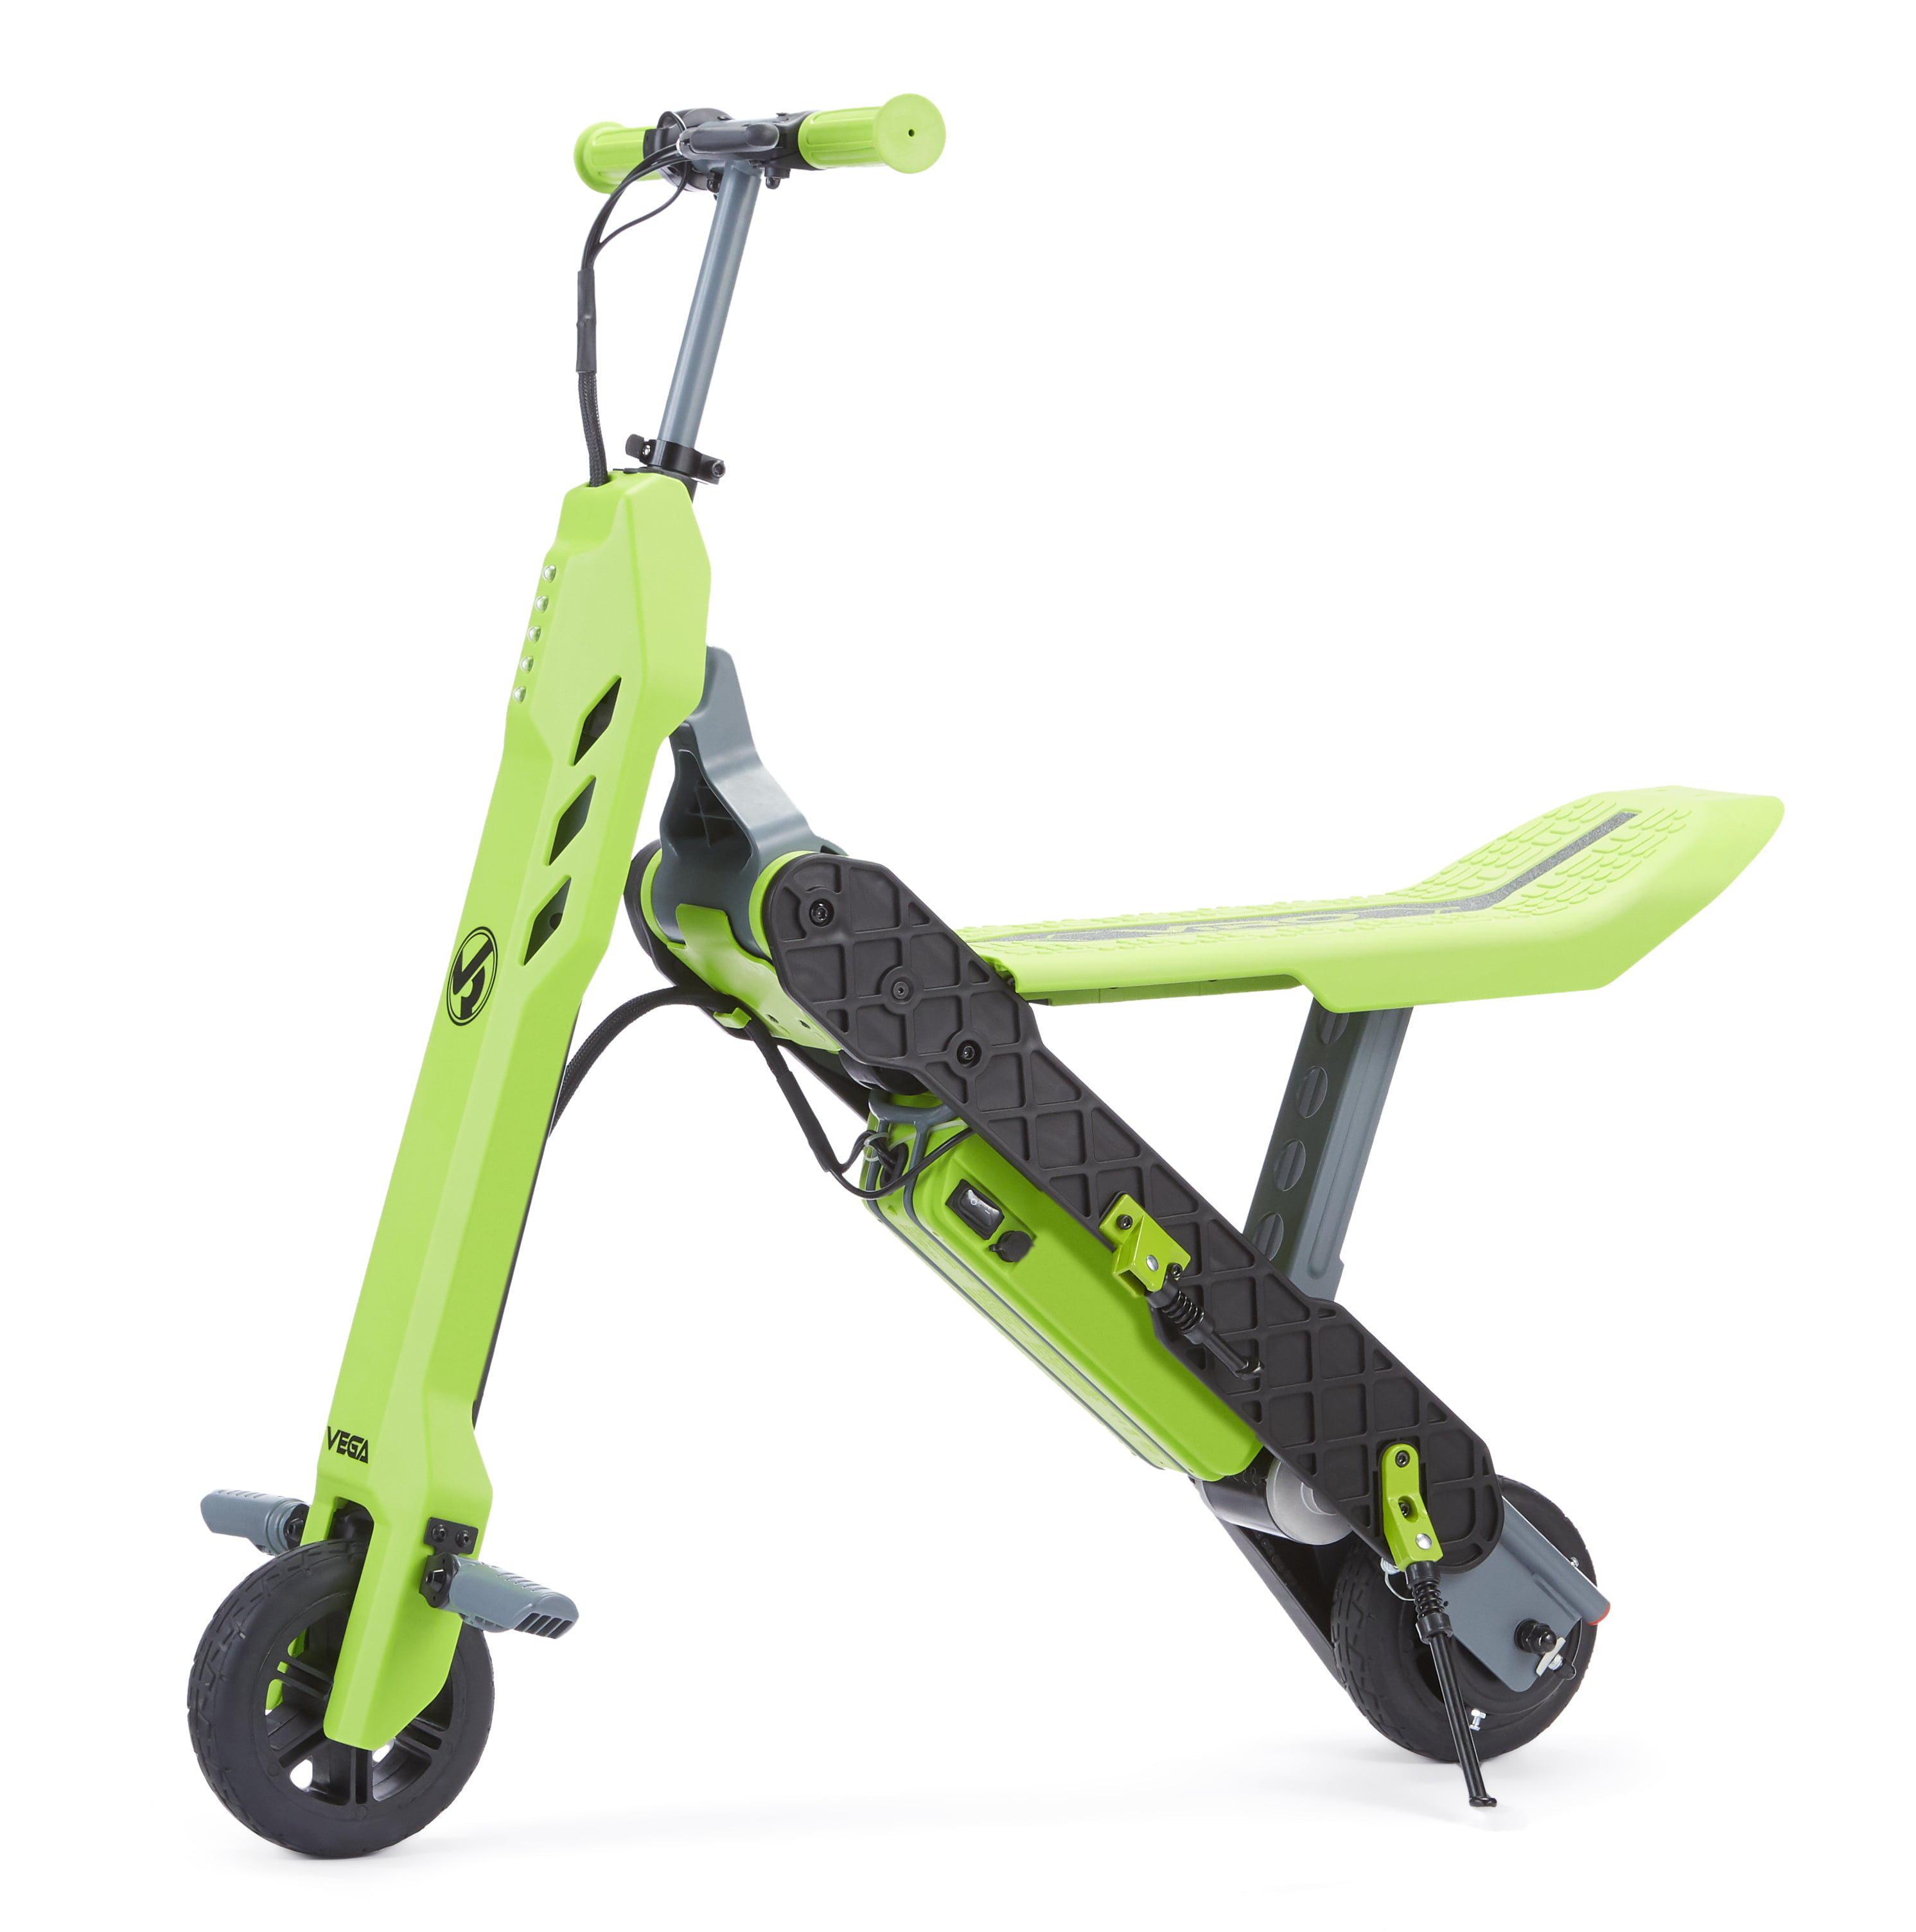 VIRO Rides Vega Transforming 2-in-1 Electric Scooter and Mini Bike UL 2272 Certified by MGA Entertainment